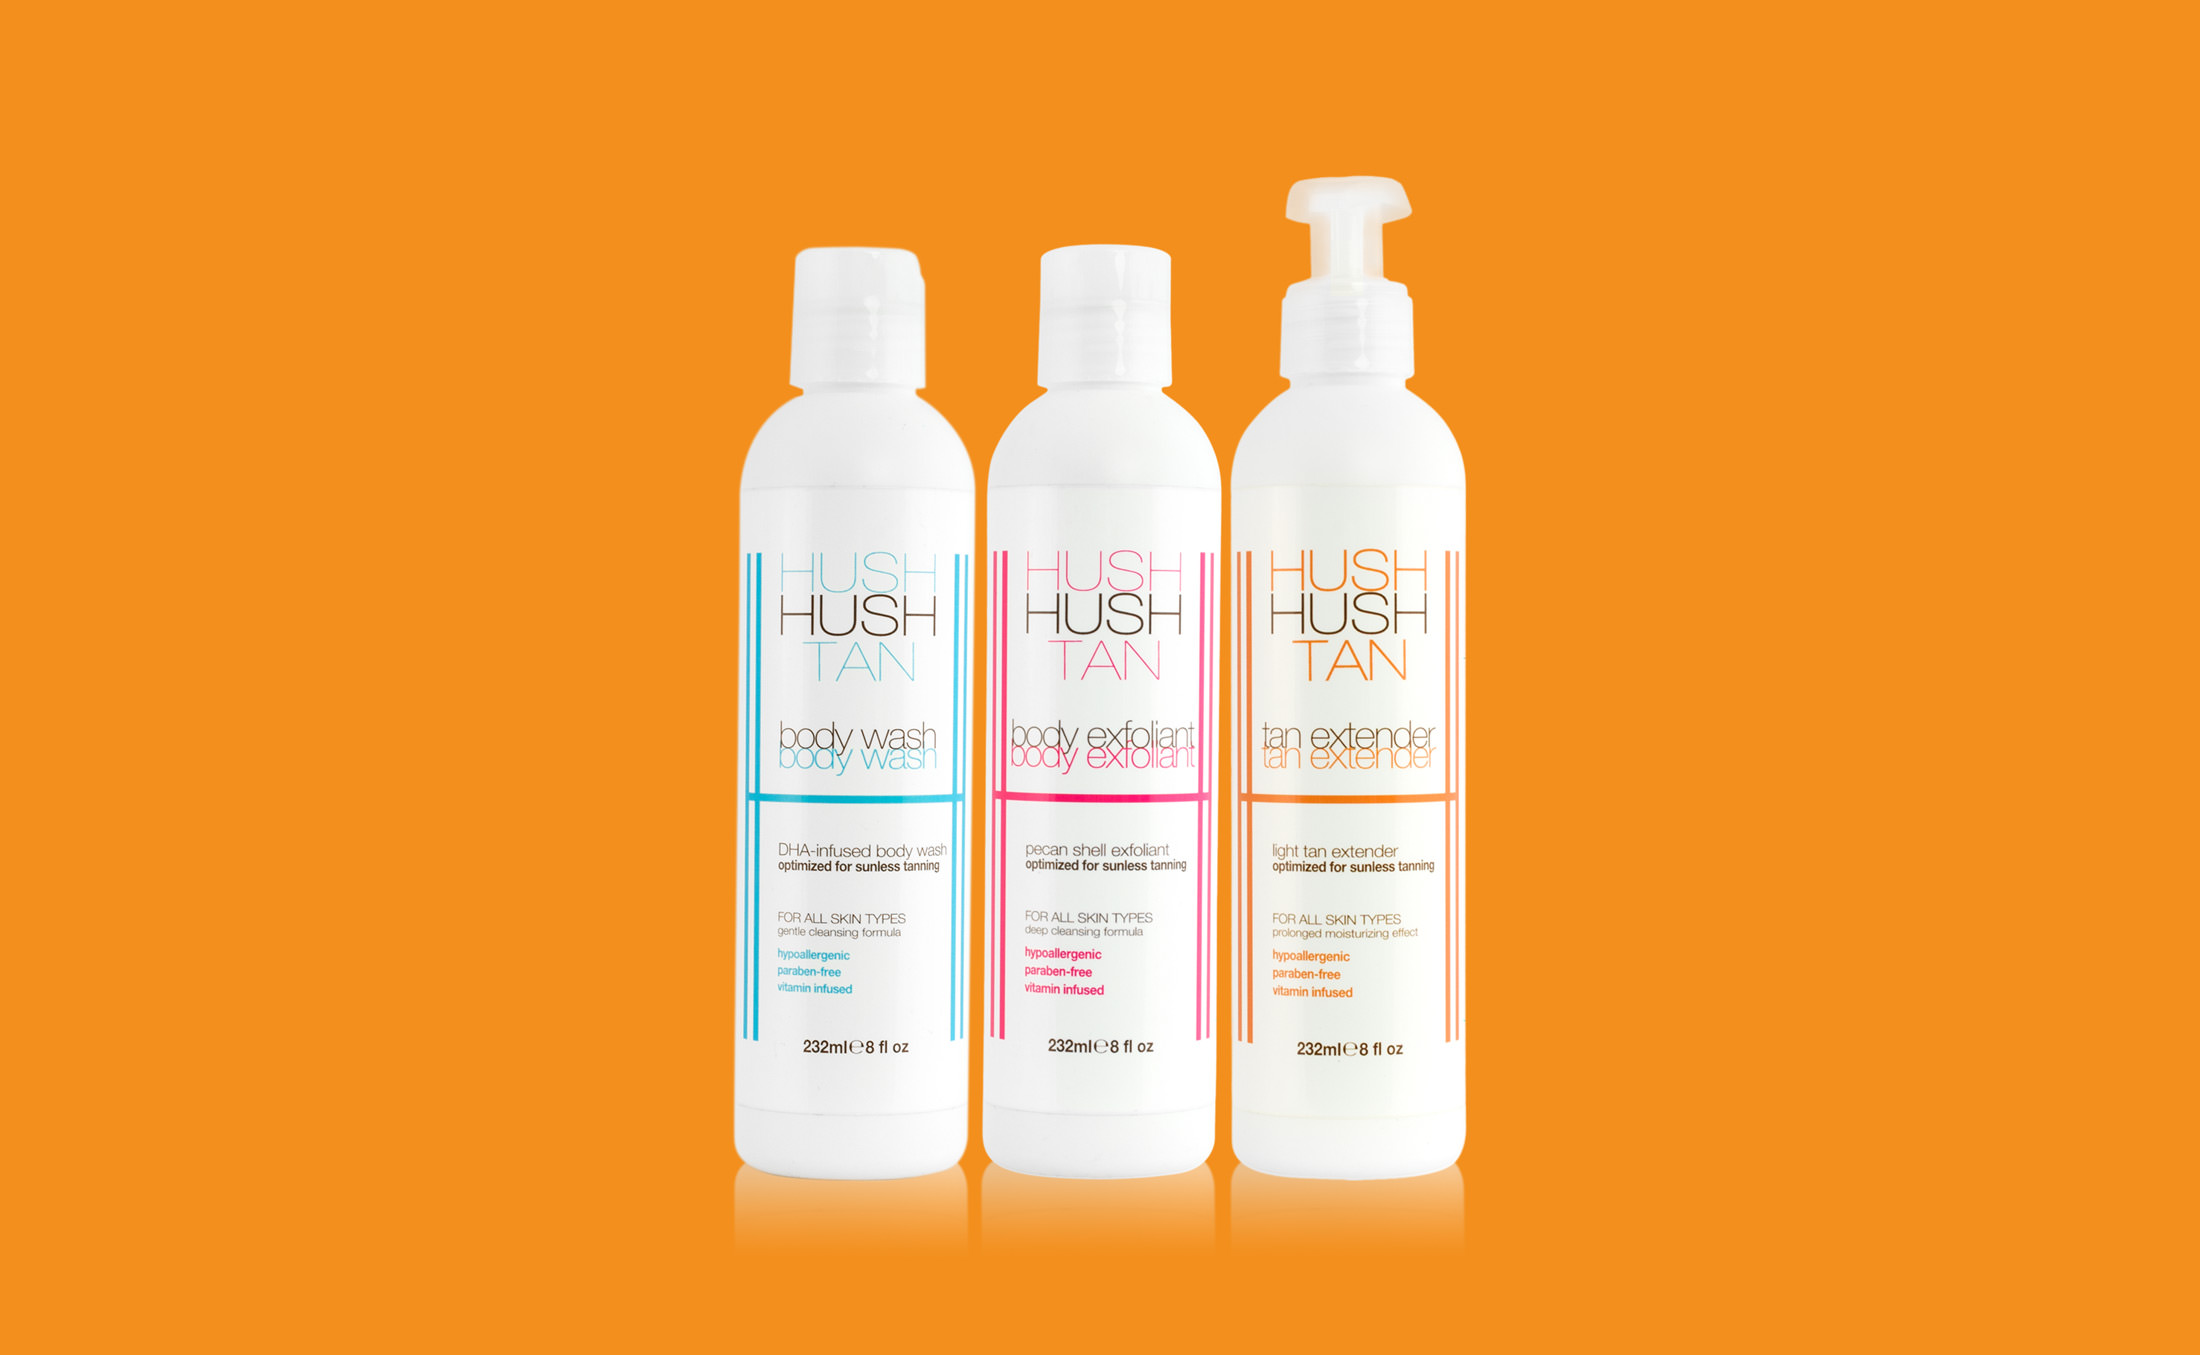 Hush Hush Tan product photography